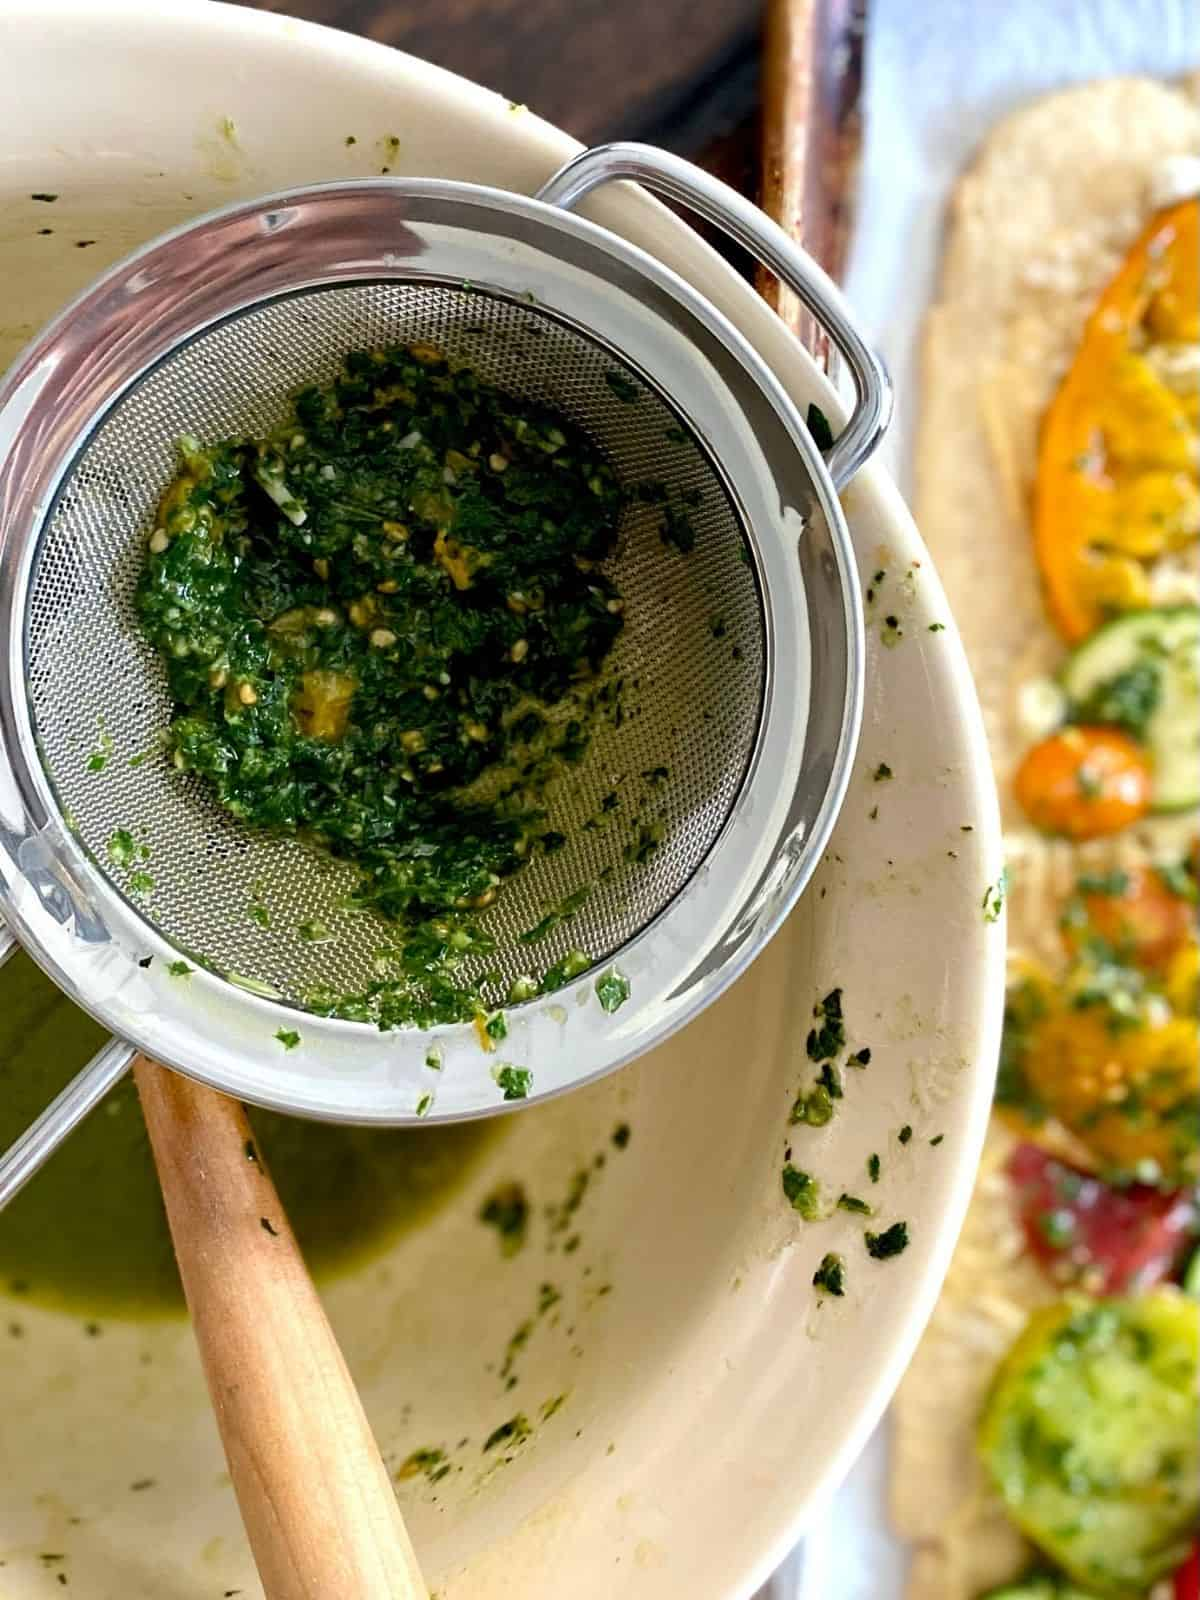 straining solids from herb mixture